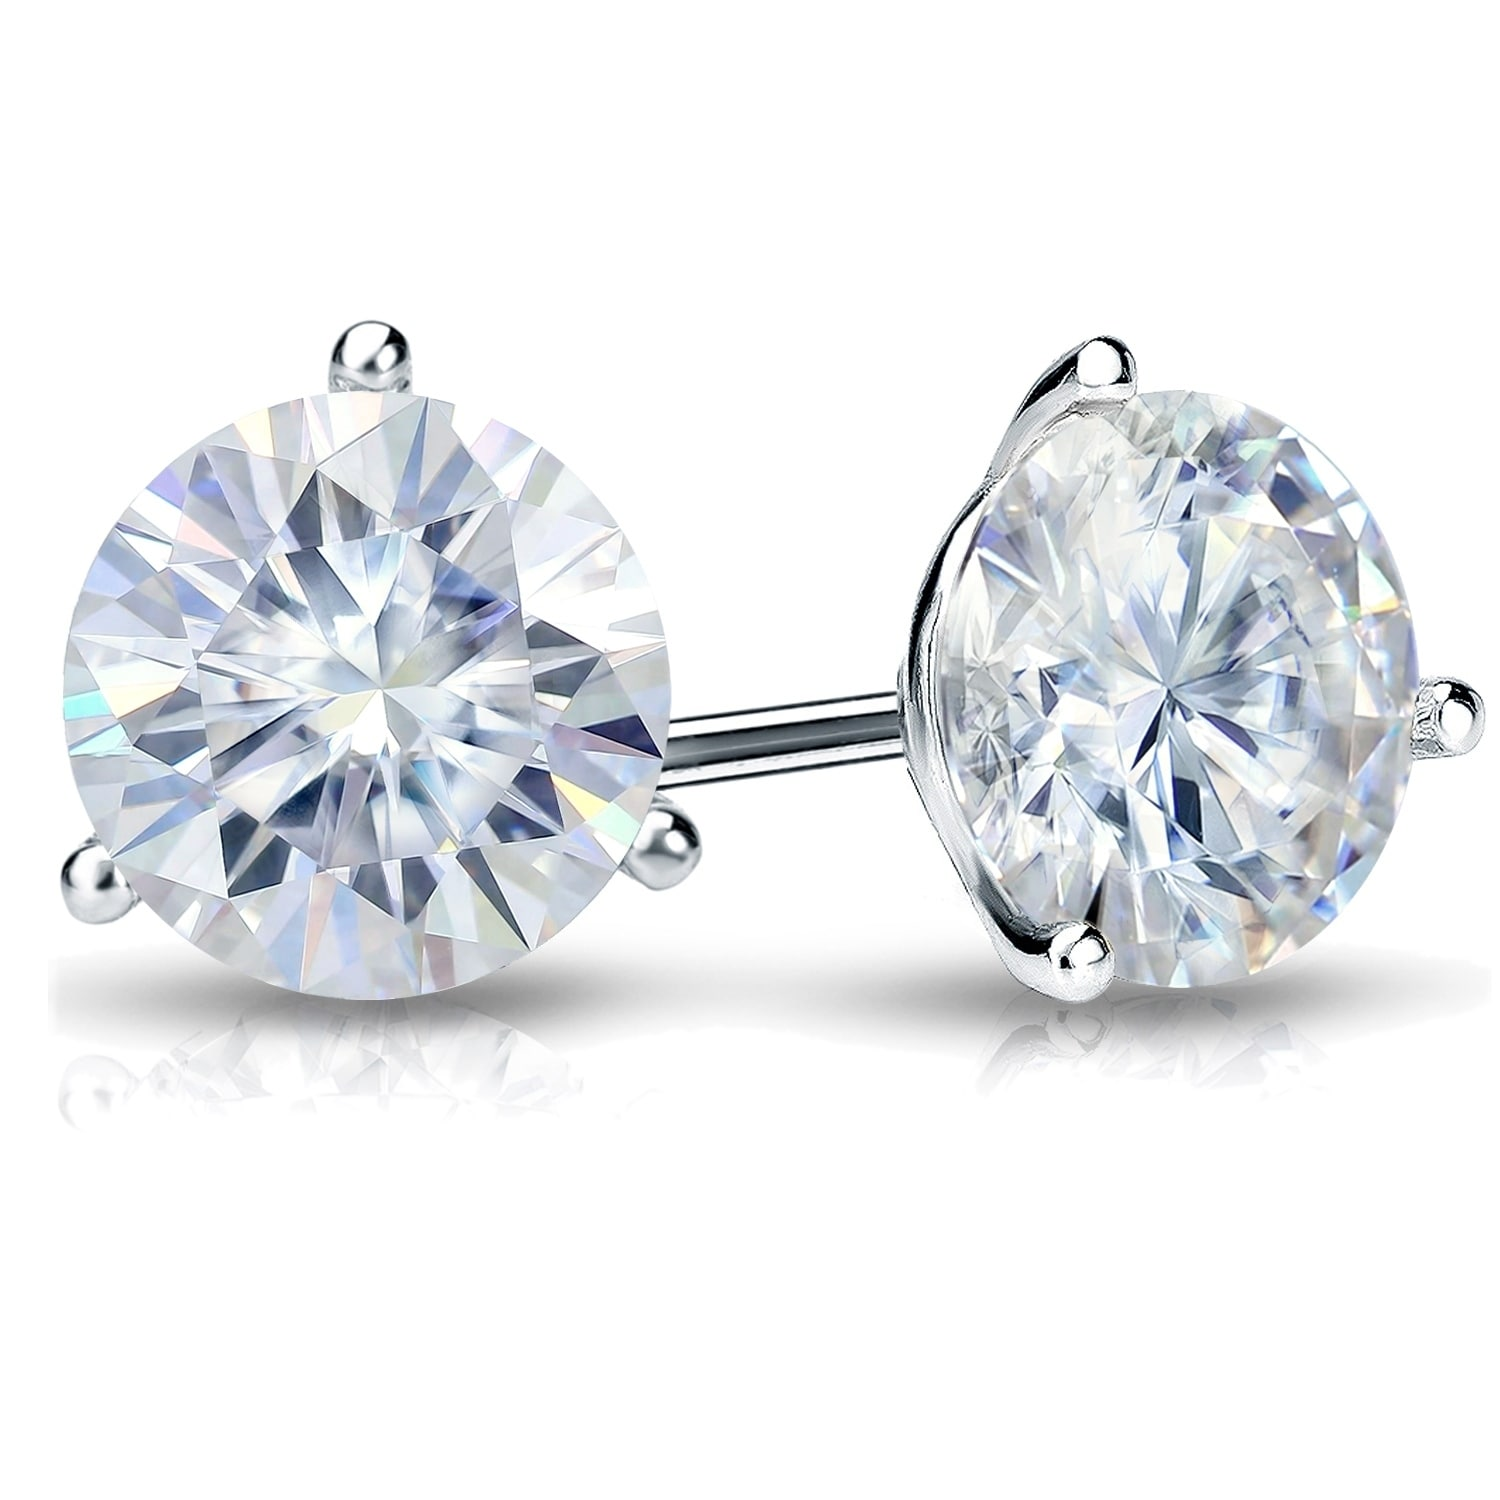 965c06933 Shop Platinum 1 1/2ct TGW Round 3 Prong Martini Moissanite Stud Earrings by  Auriya - 1.50ct - On Sale - Free Shipping Today - Overstock - 23535114